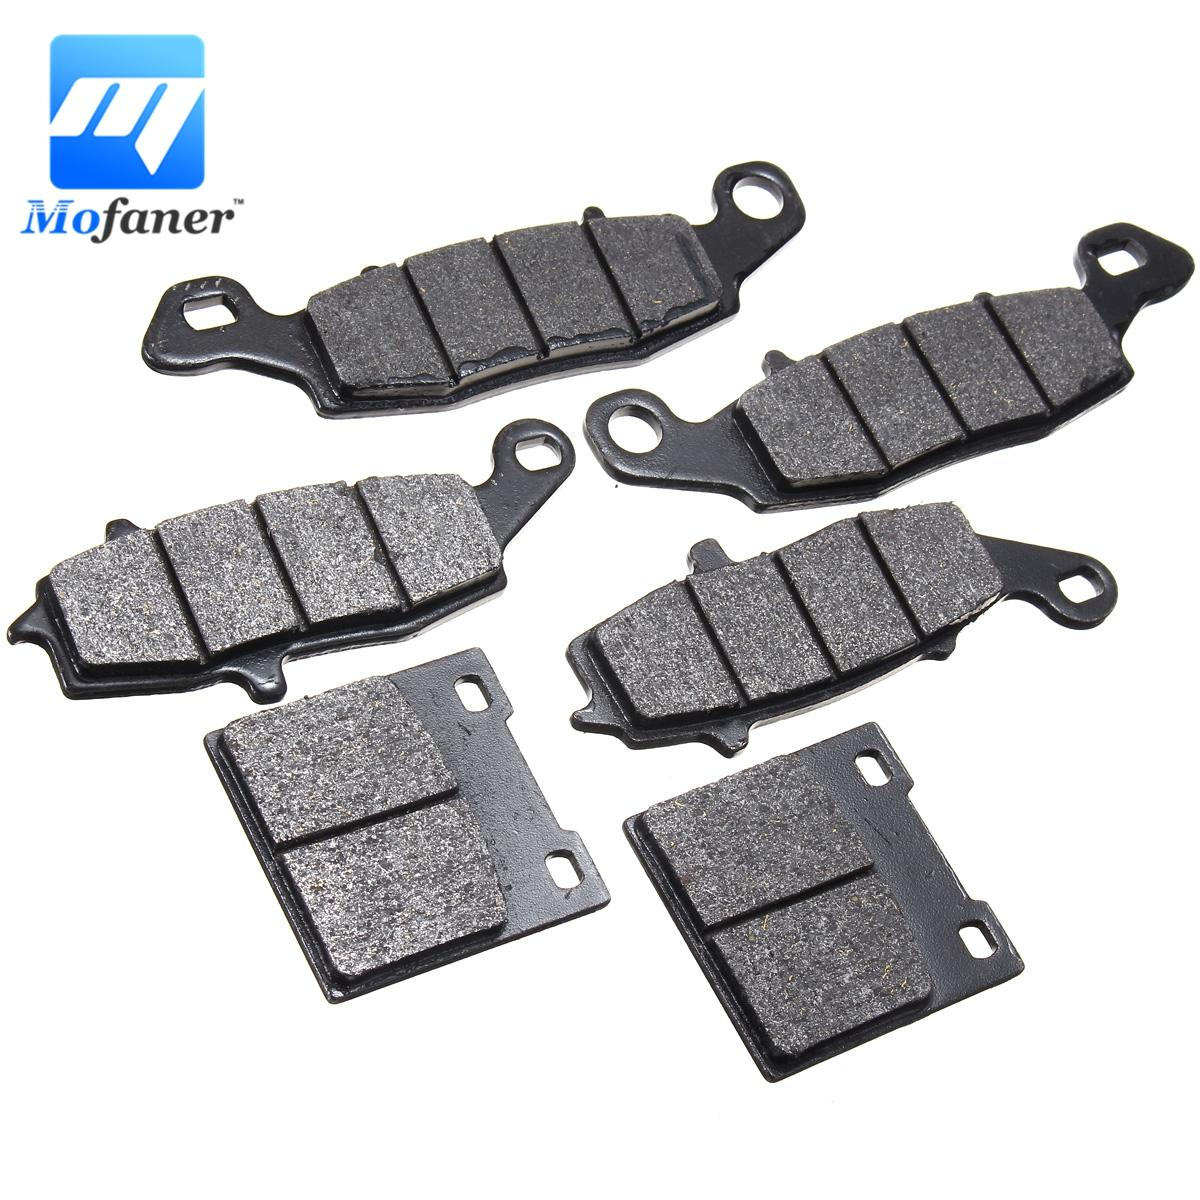 6Pcs/Set Motorcycle Brake Pads Front + Rear For Suzuki GSX750F 1998-2002 Katana FW FX FY FK1 FK2 motorcycle front brake disc rotor for suzuki gsx 600 f 1989 1990 gsx 750 f katana 1998 1999 2000 2001 2002 2003 gold